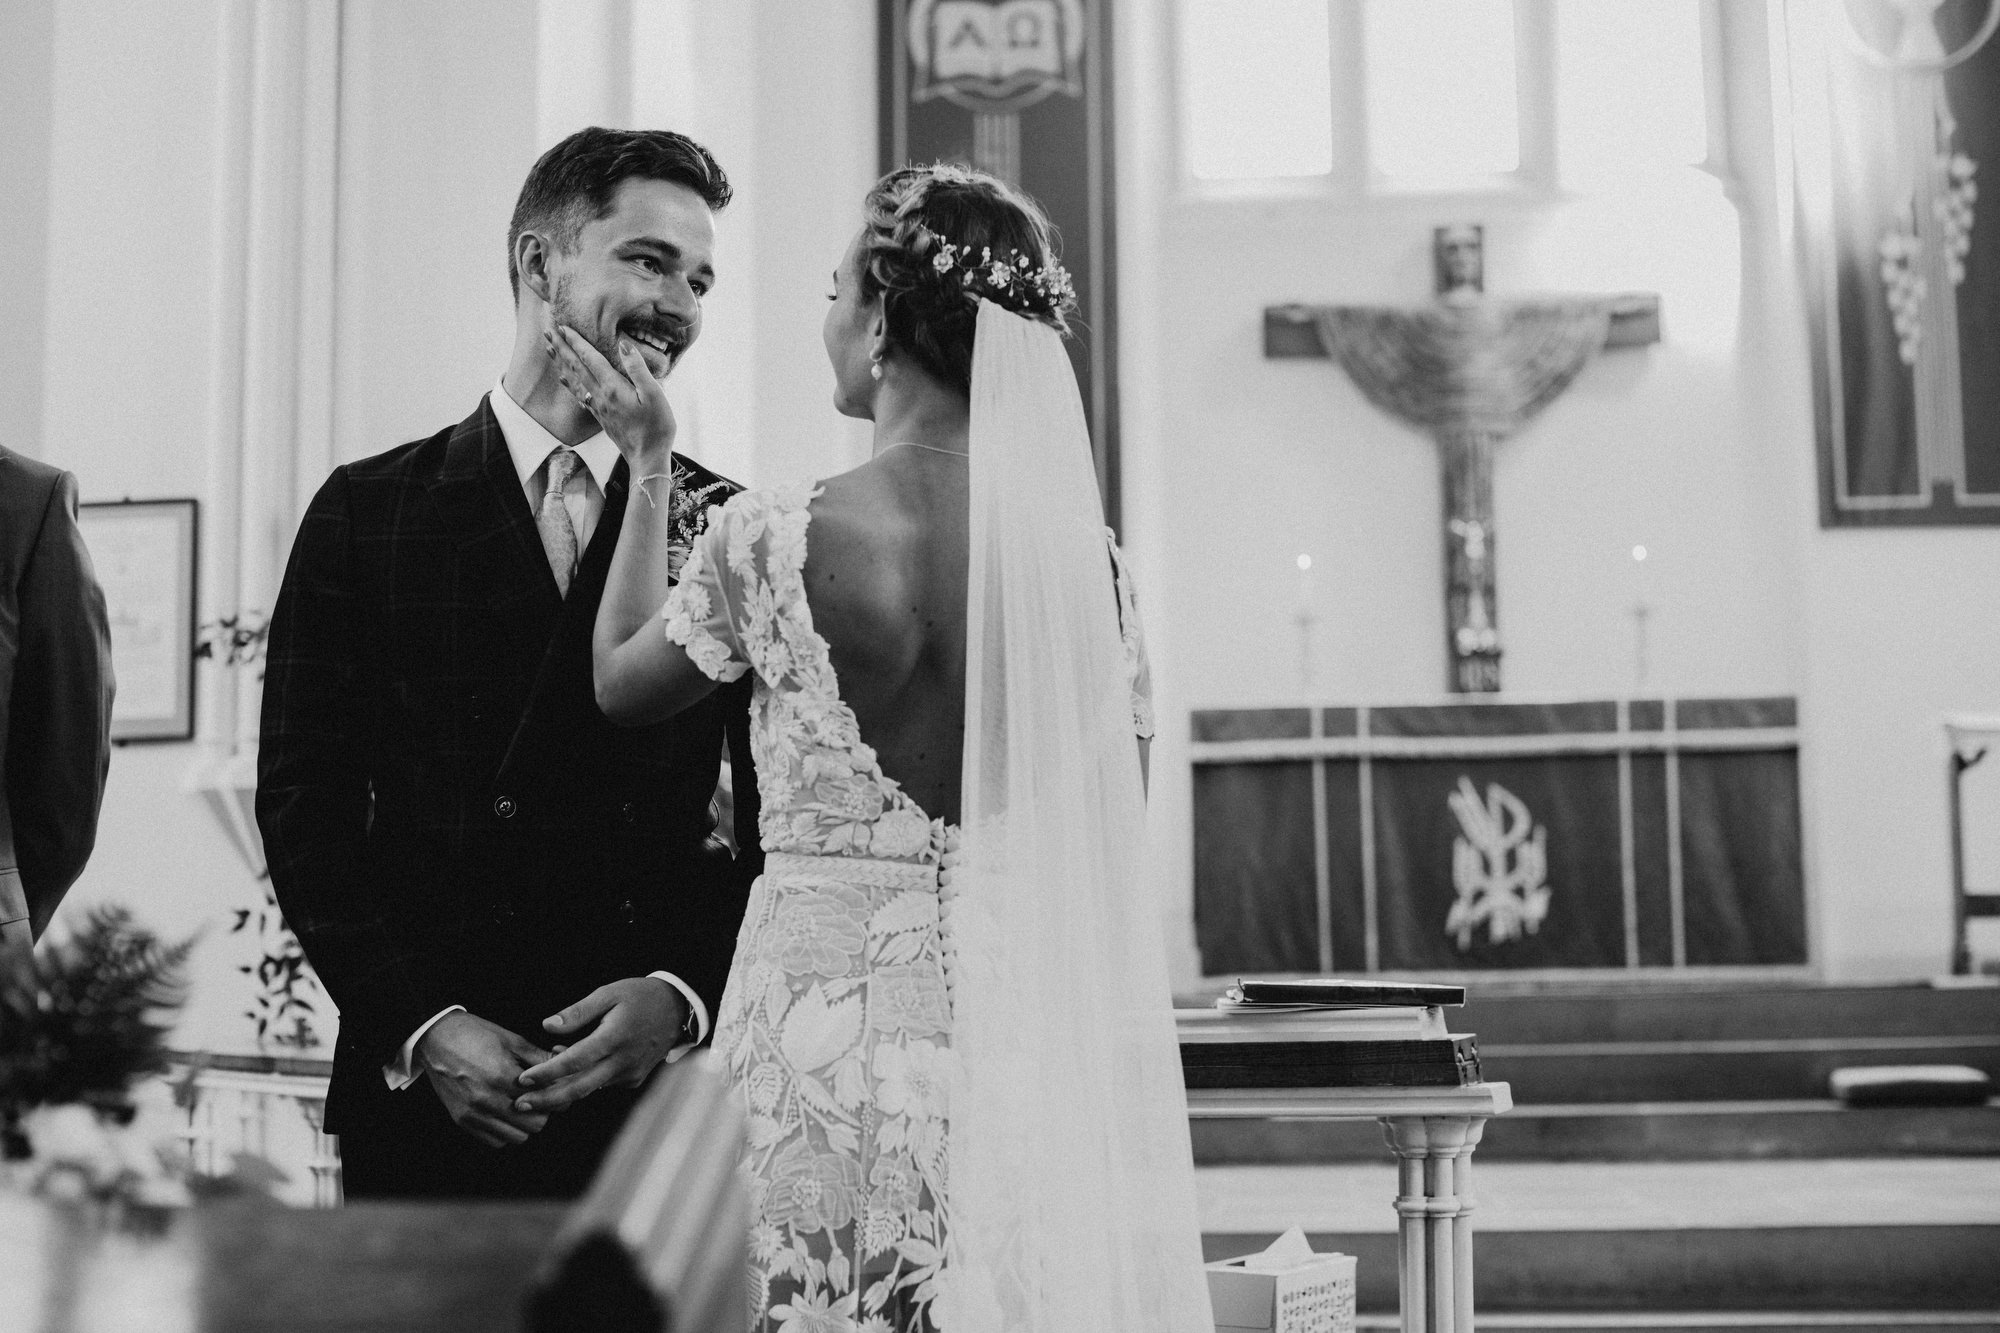 Price for a wedding photographer